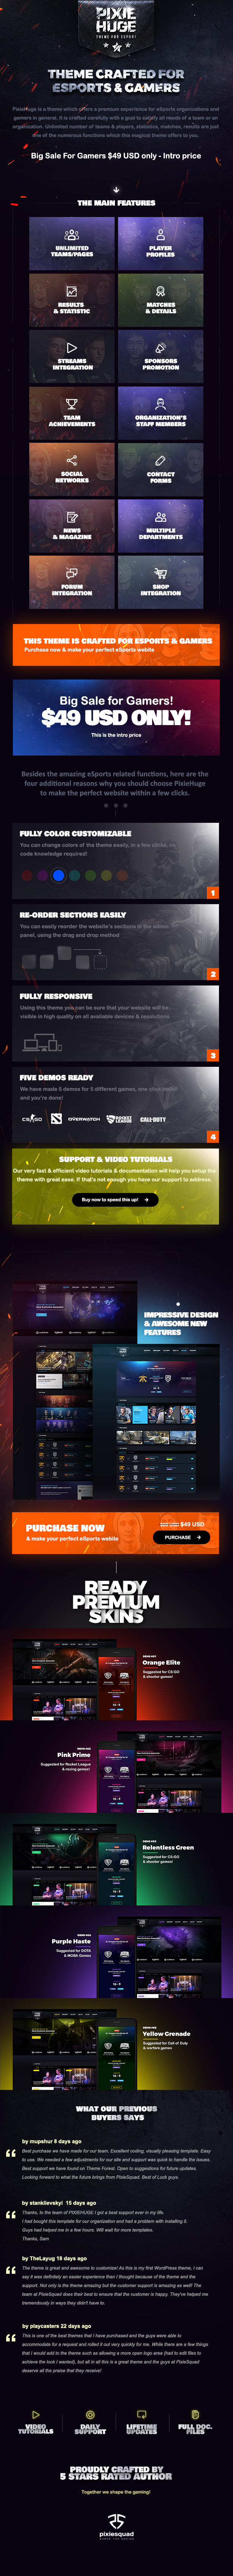 PixieHuge - eSports Gaming Theme For Clans & Organizations